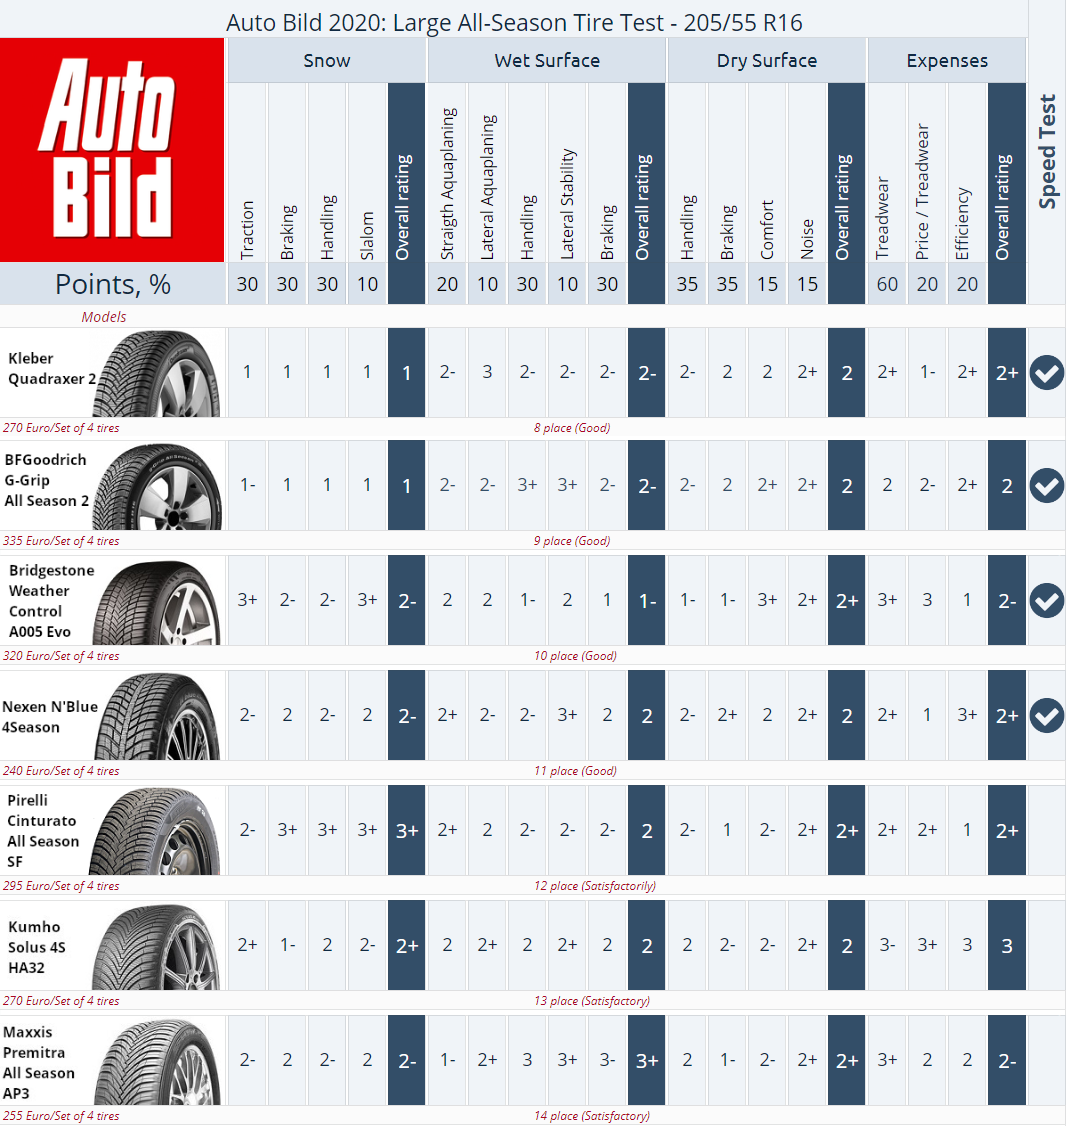 Ranking of all-season tires 2020/2021, Auto Bild 2020 test, size 205/55R16. Places 8–14. Click to enlarge.